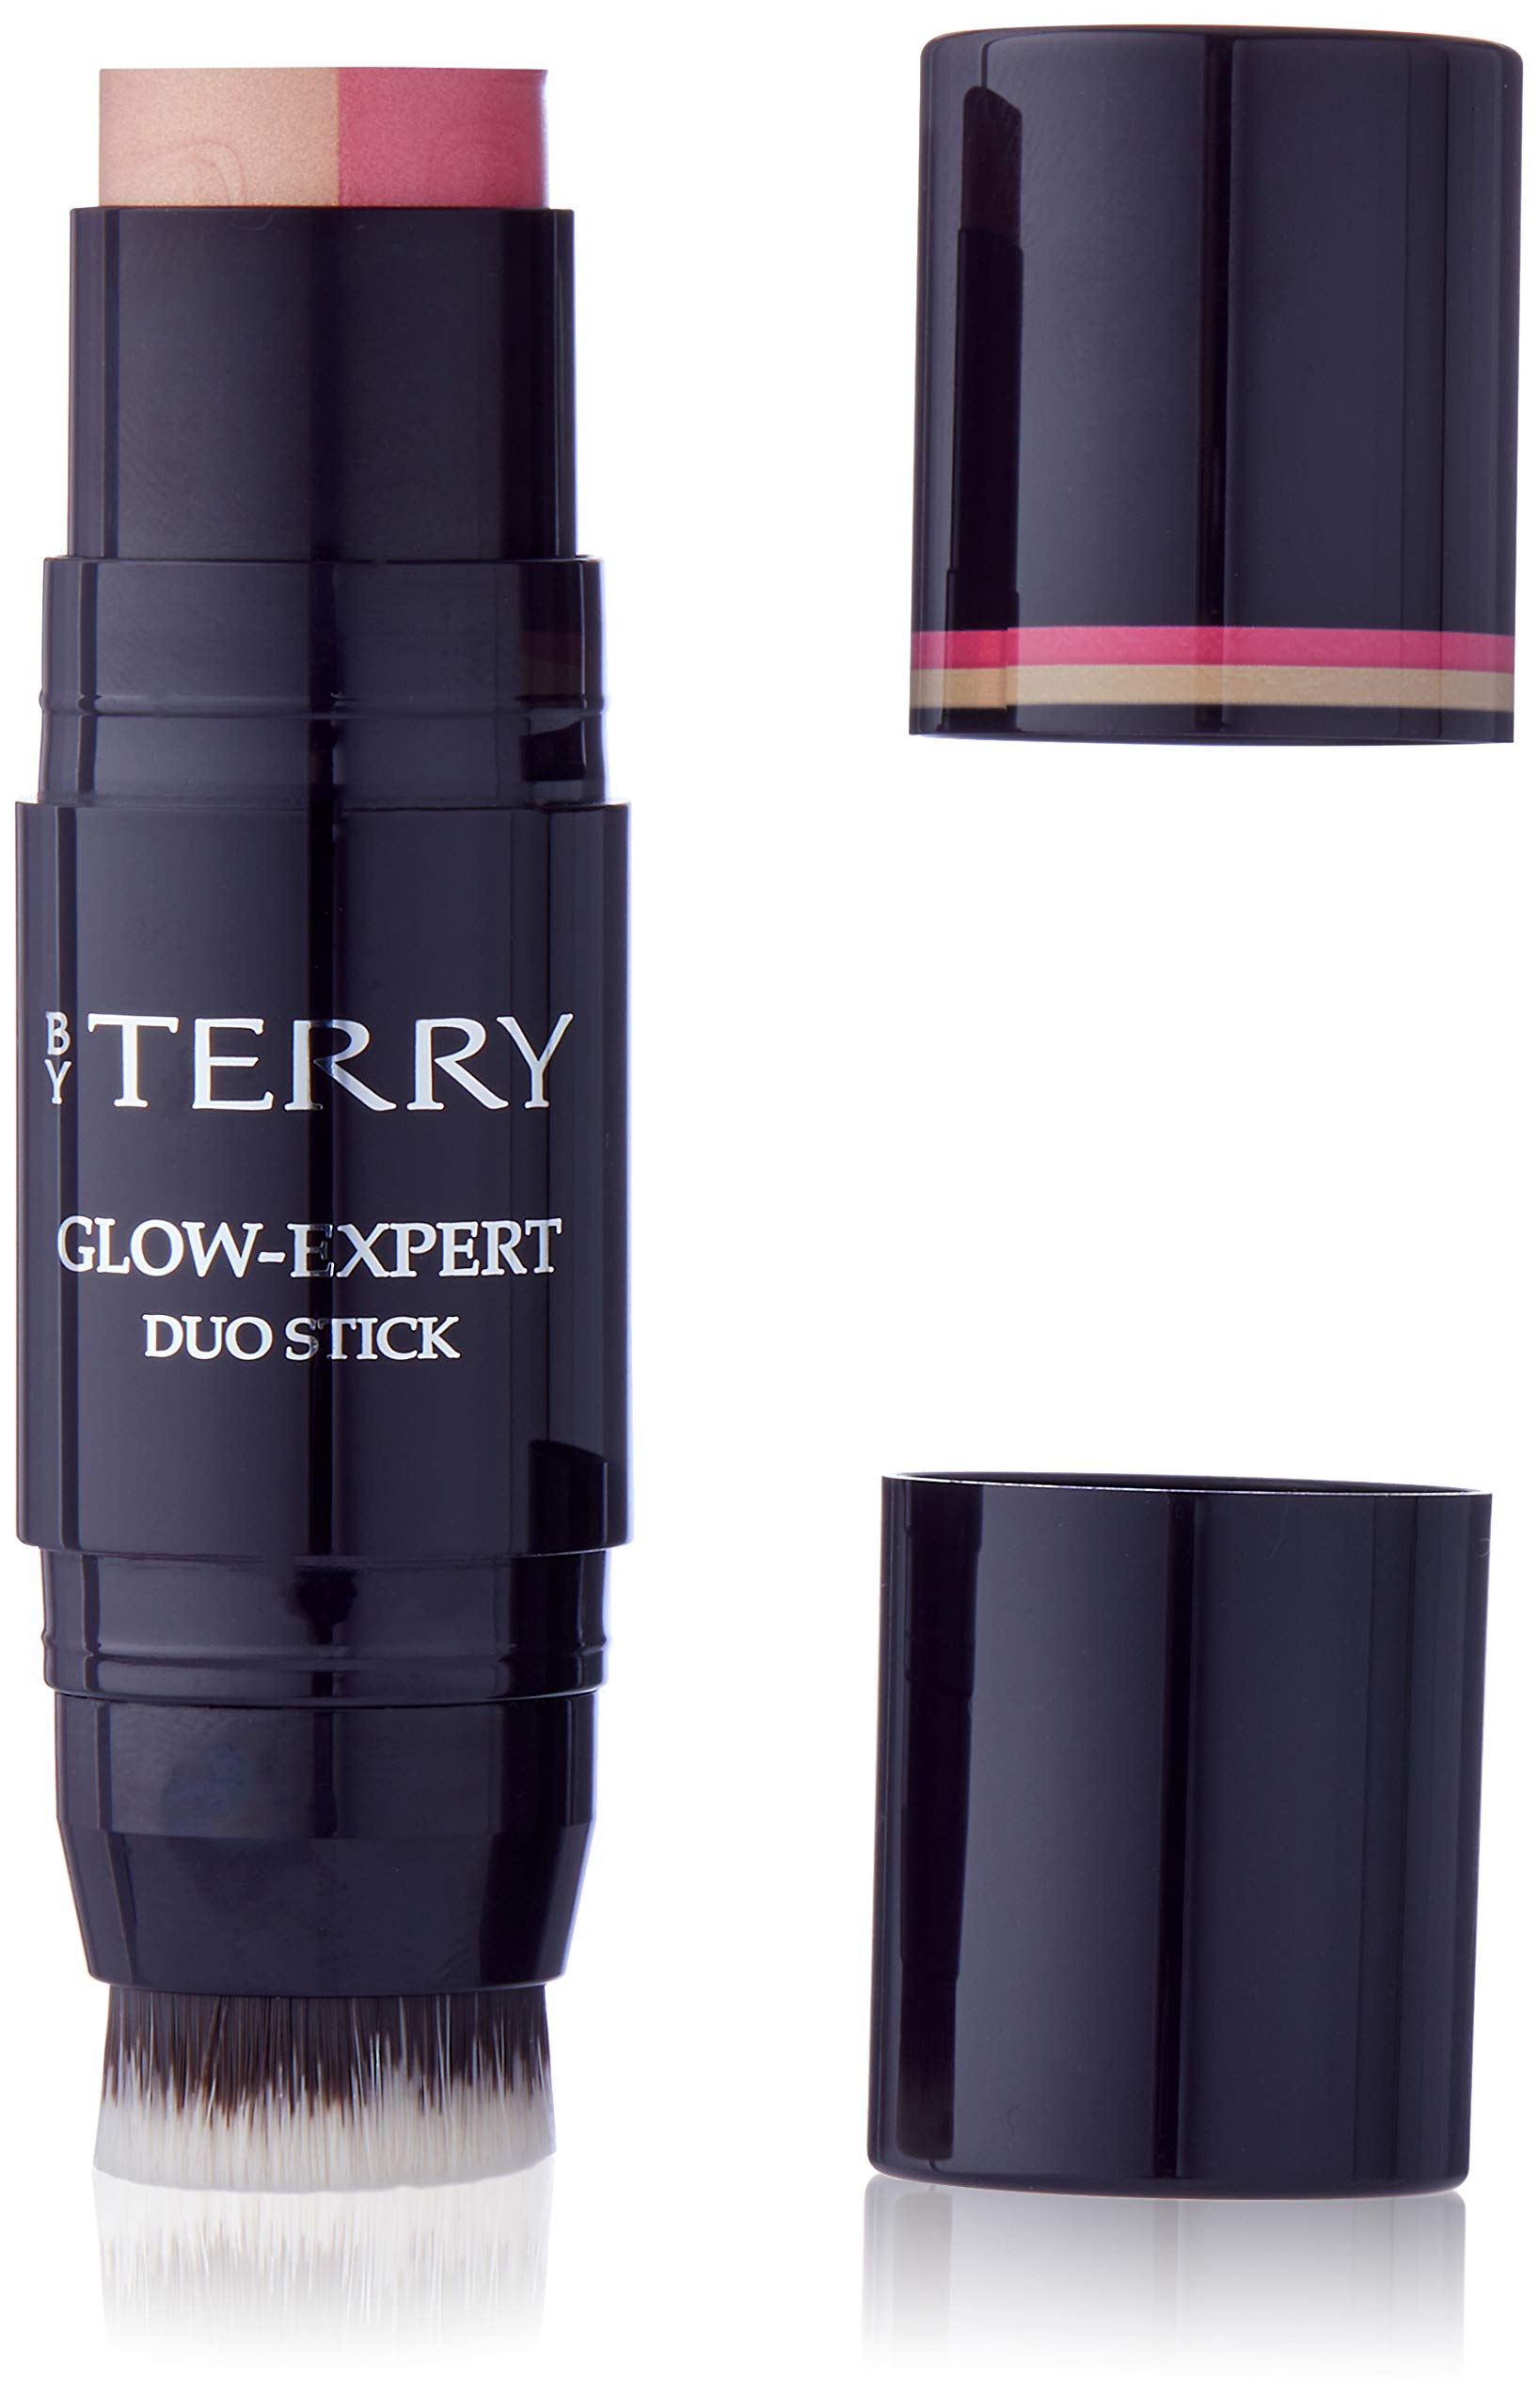 BY TERRY Glow-expert duo stick, 2 - Terra Rosa, 38 Gram